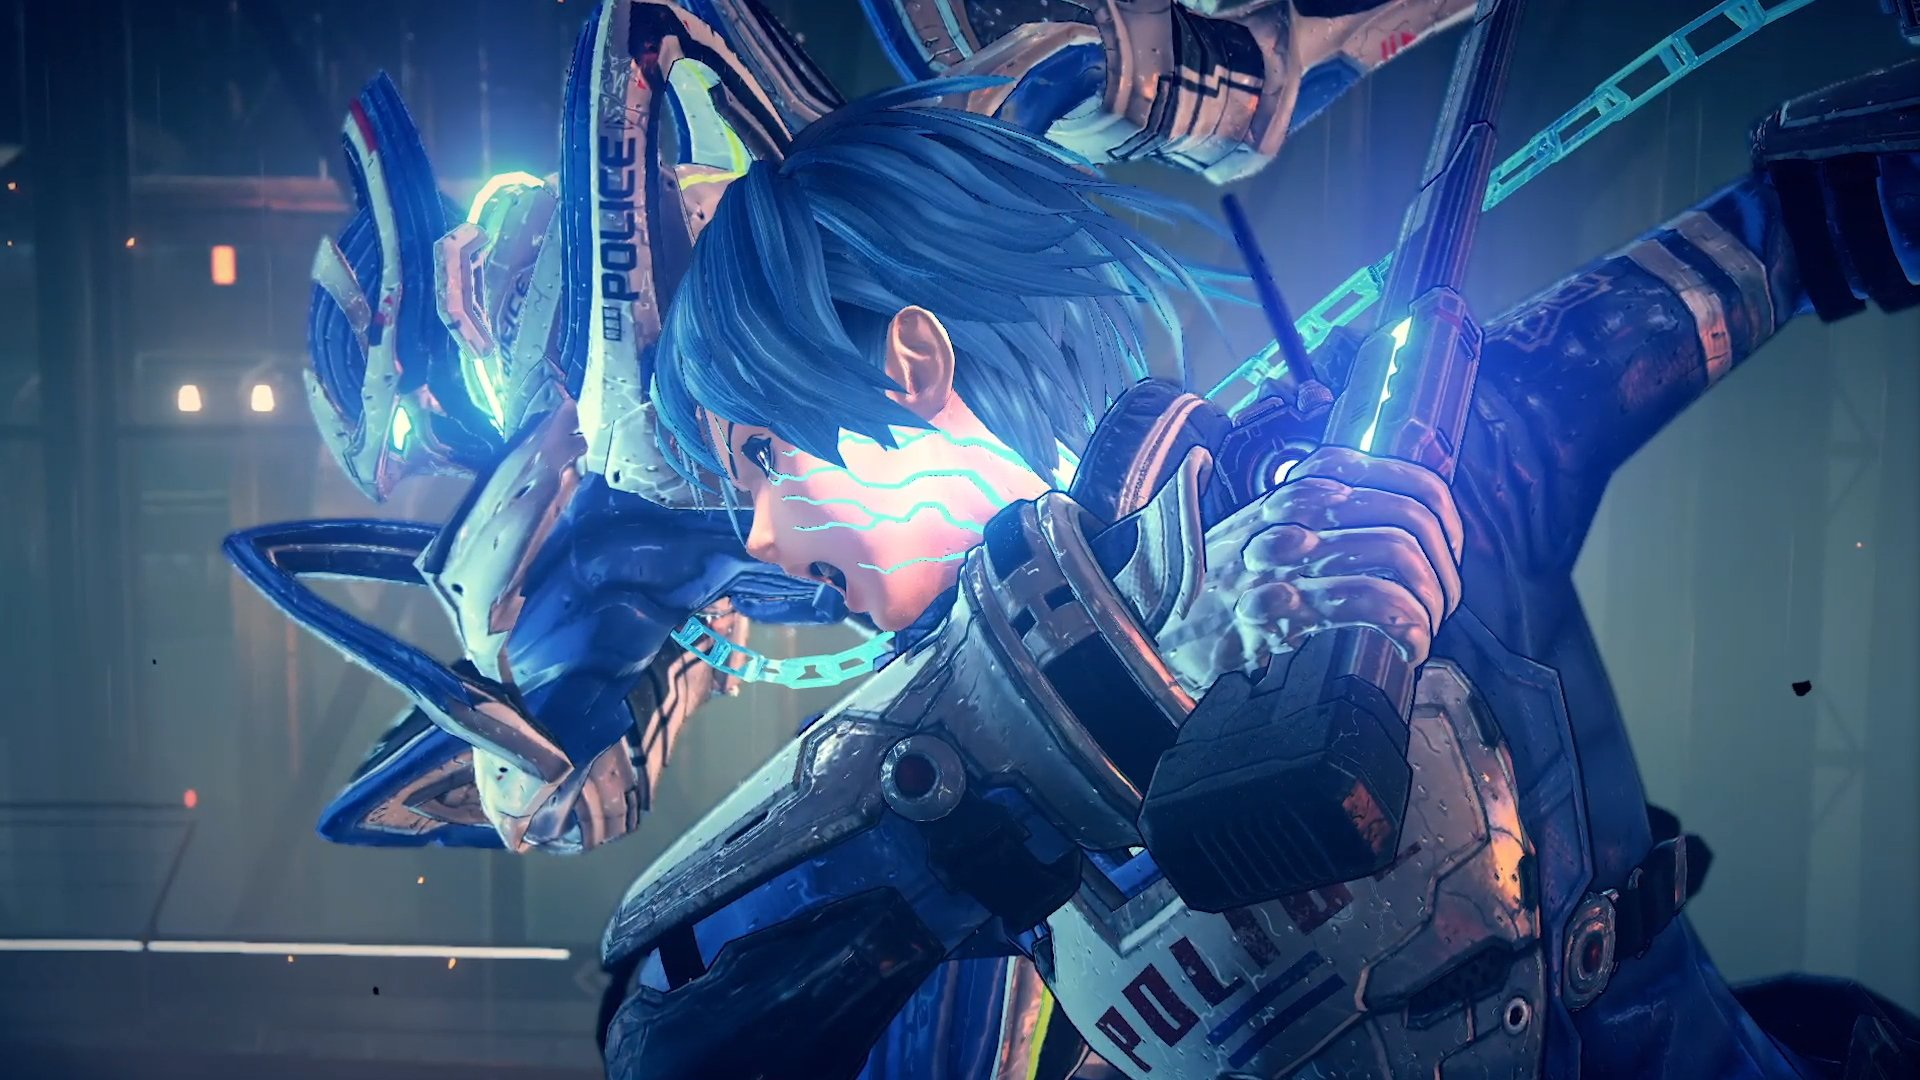 Astral Chain (a different kind of Starlink) Astral-chain-02-13-19-1